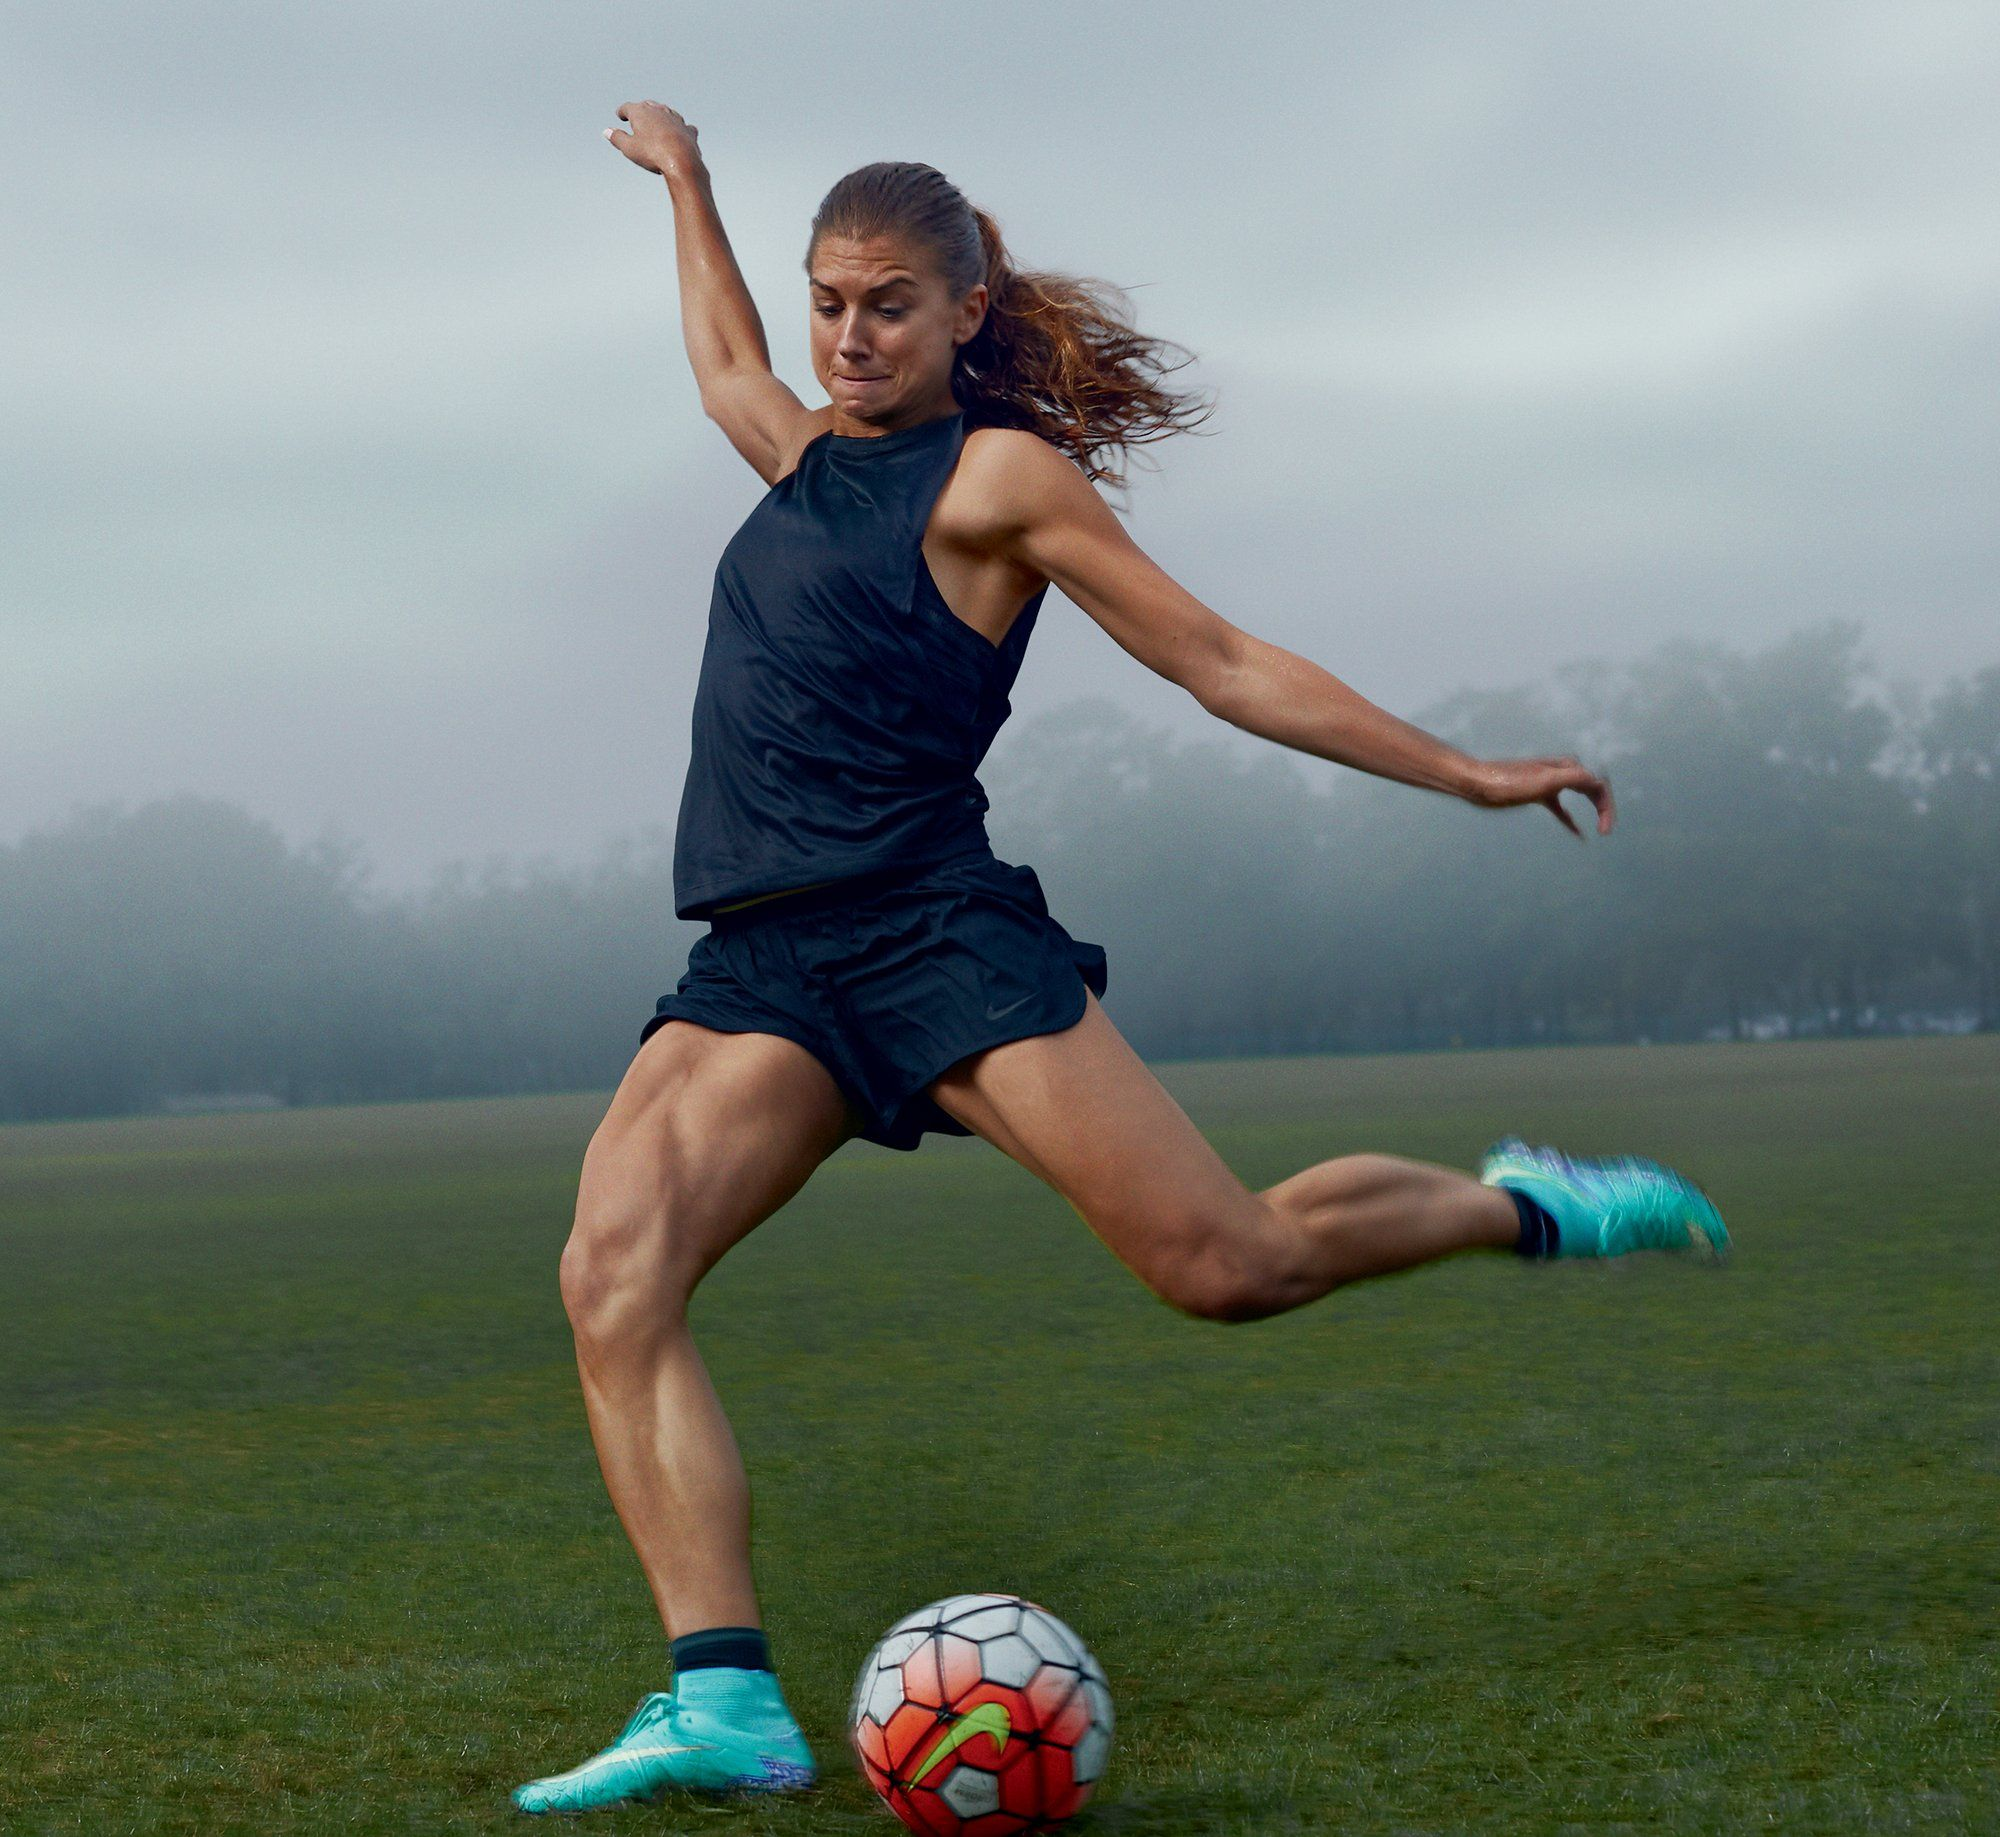 Vogue S Hamish Bowles Trains With Soccer Star Alex Morgan Womens Soccer Uswnt Soccer Soccer Players